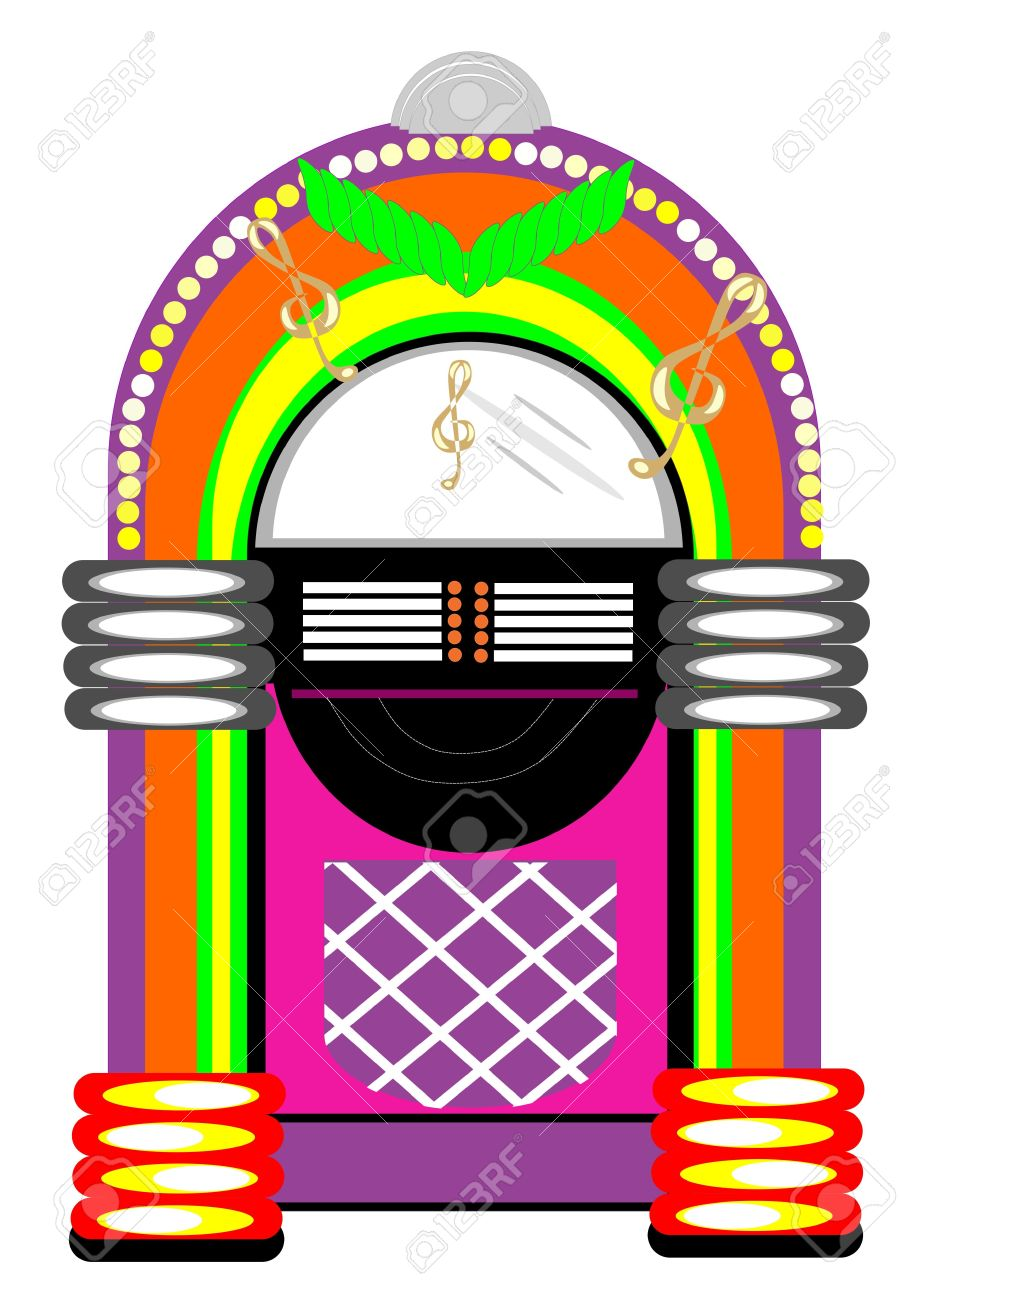 retro jukebox illustration royalty free cliparts vectors and stock rh 123rf com 1950s jukebox clip art jukebox clip art free